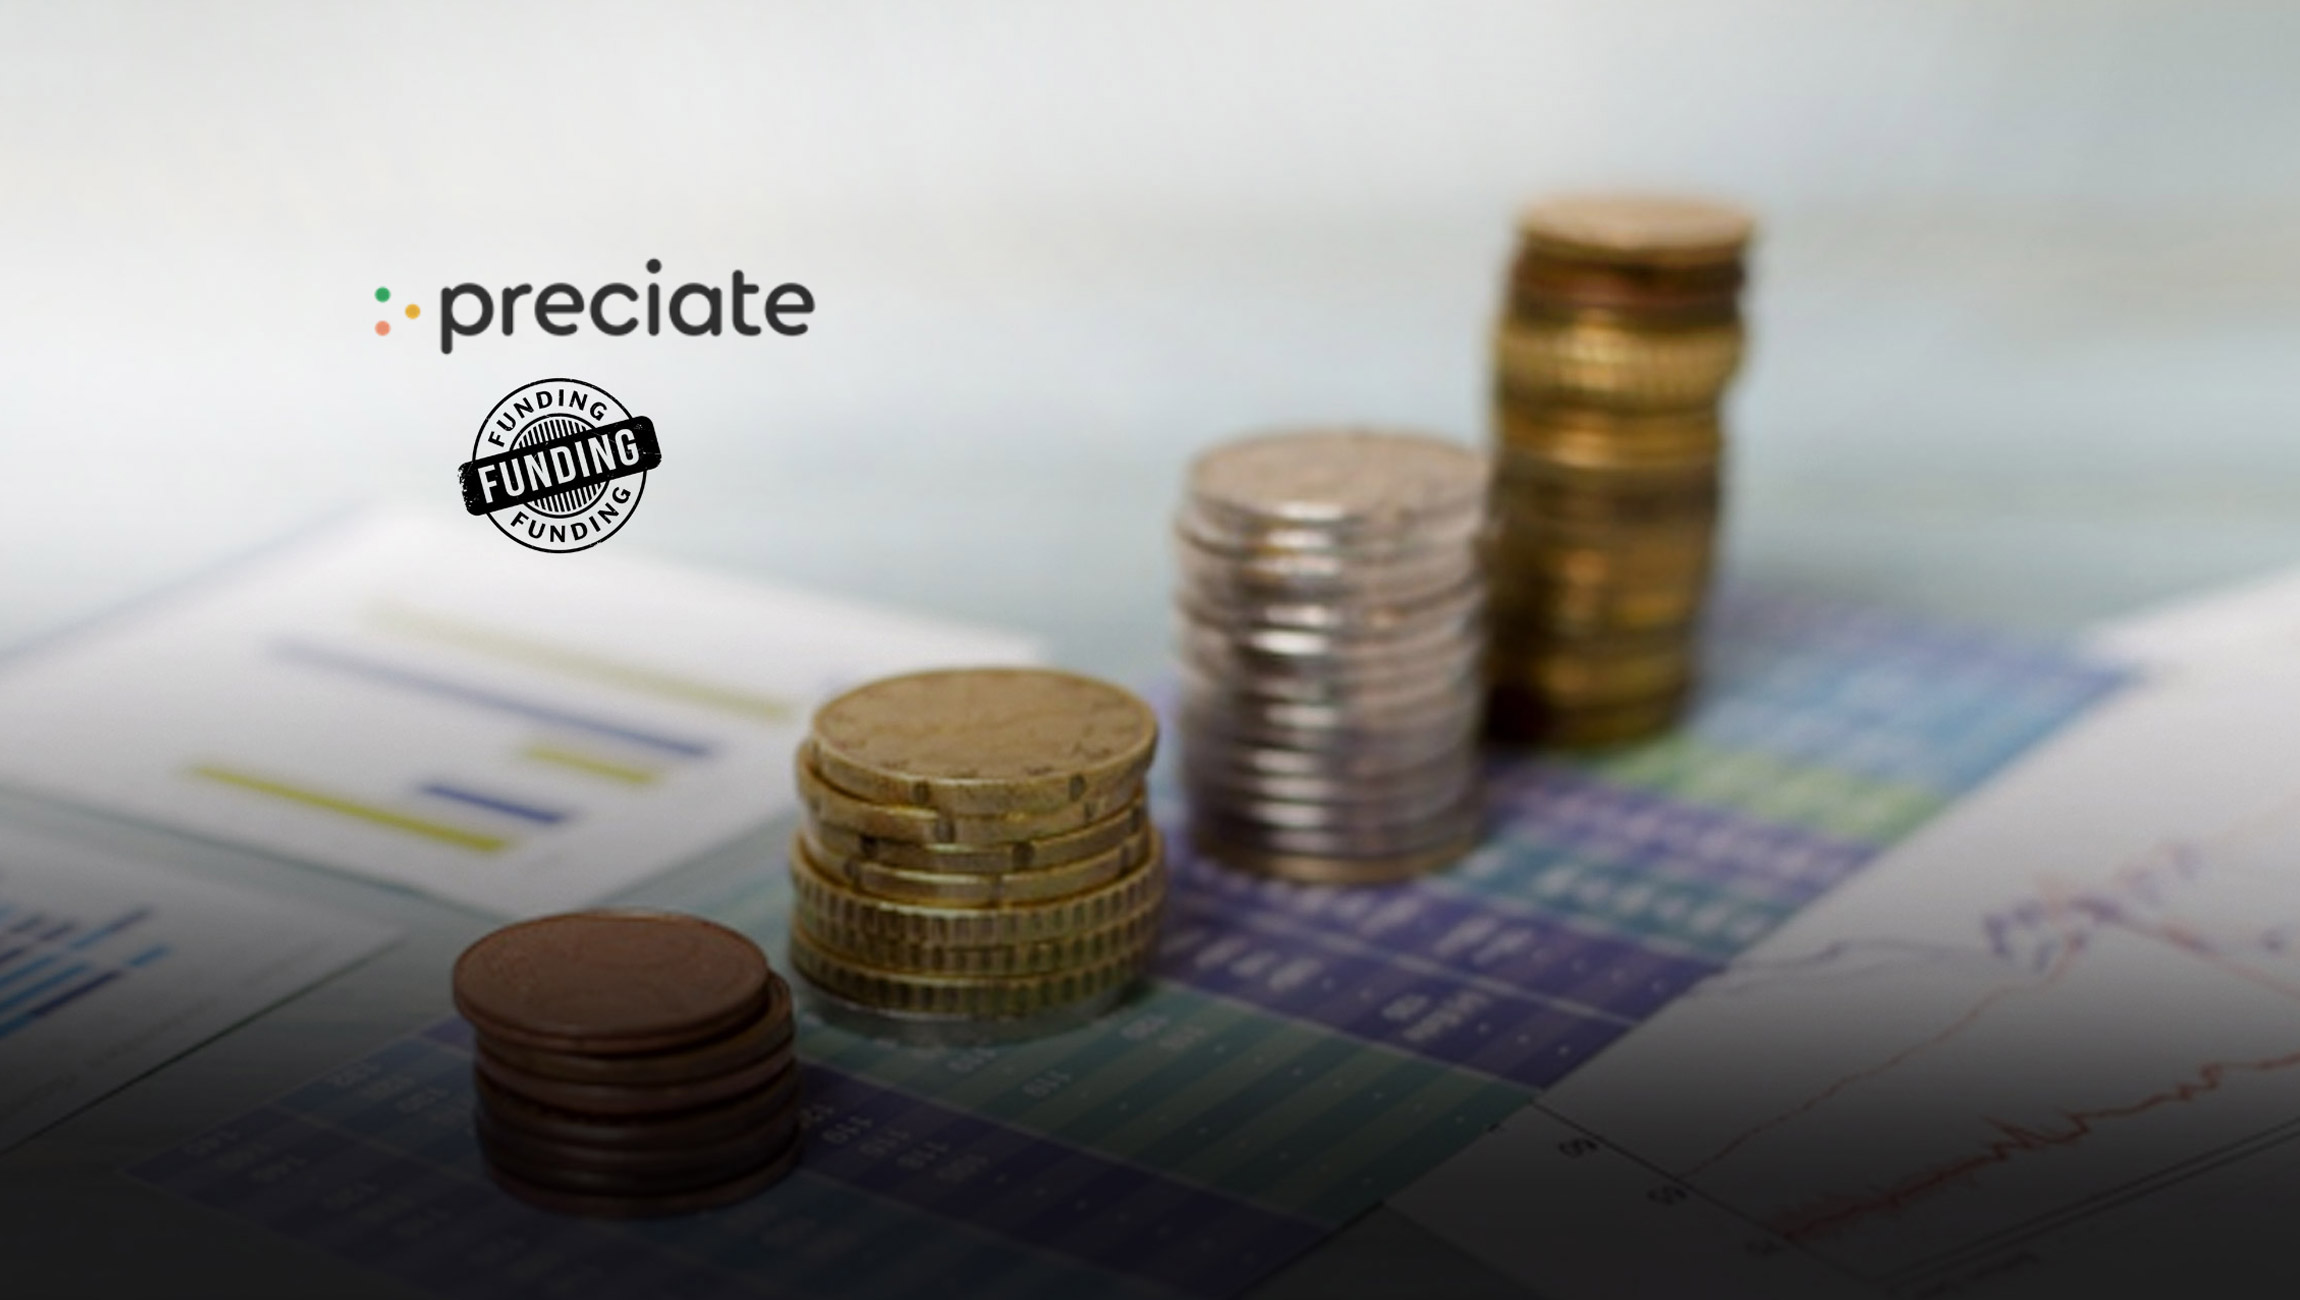 Preciate Raises $4.6 Million Seed Round to Scale its Product Development and Marketing Functions